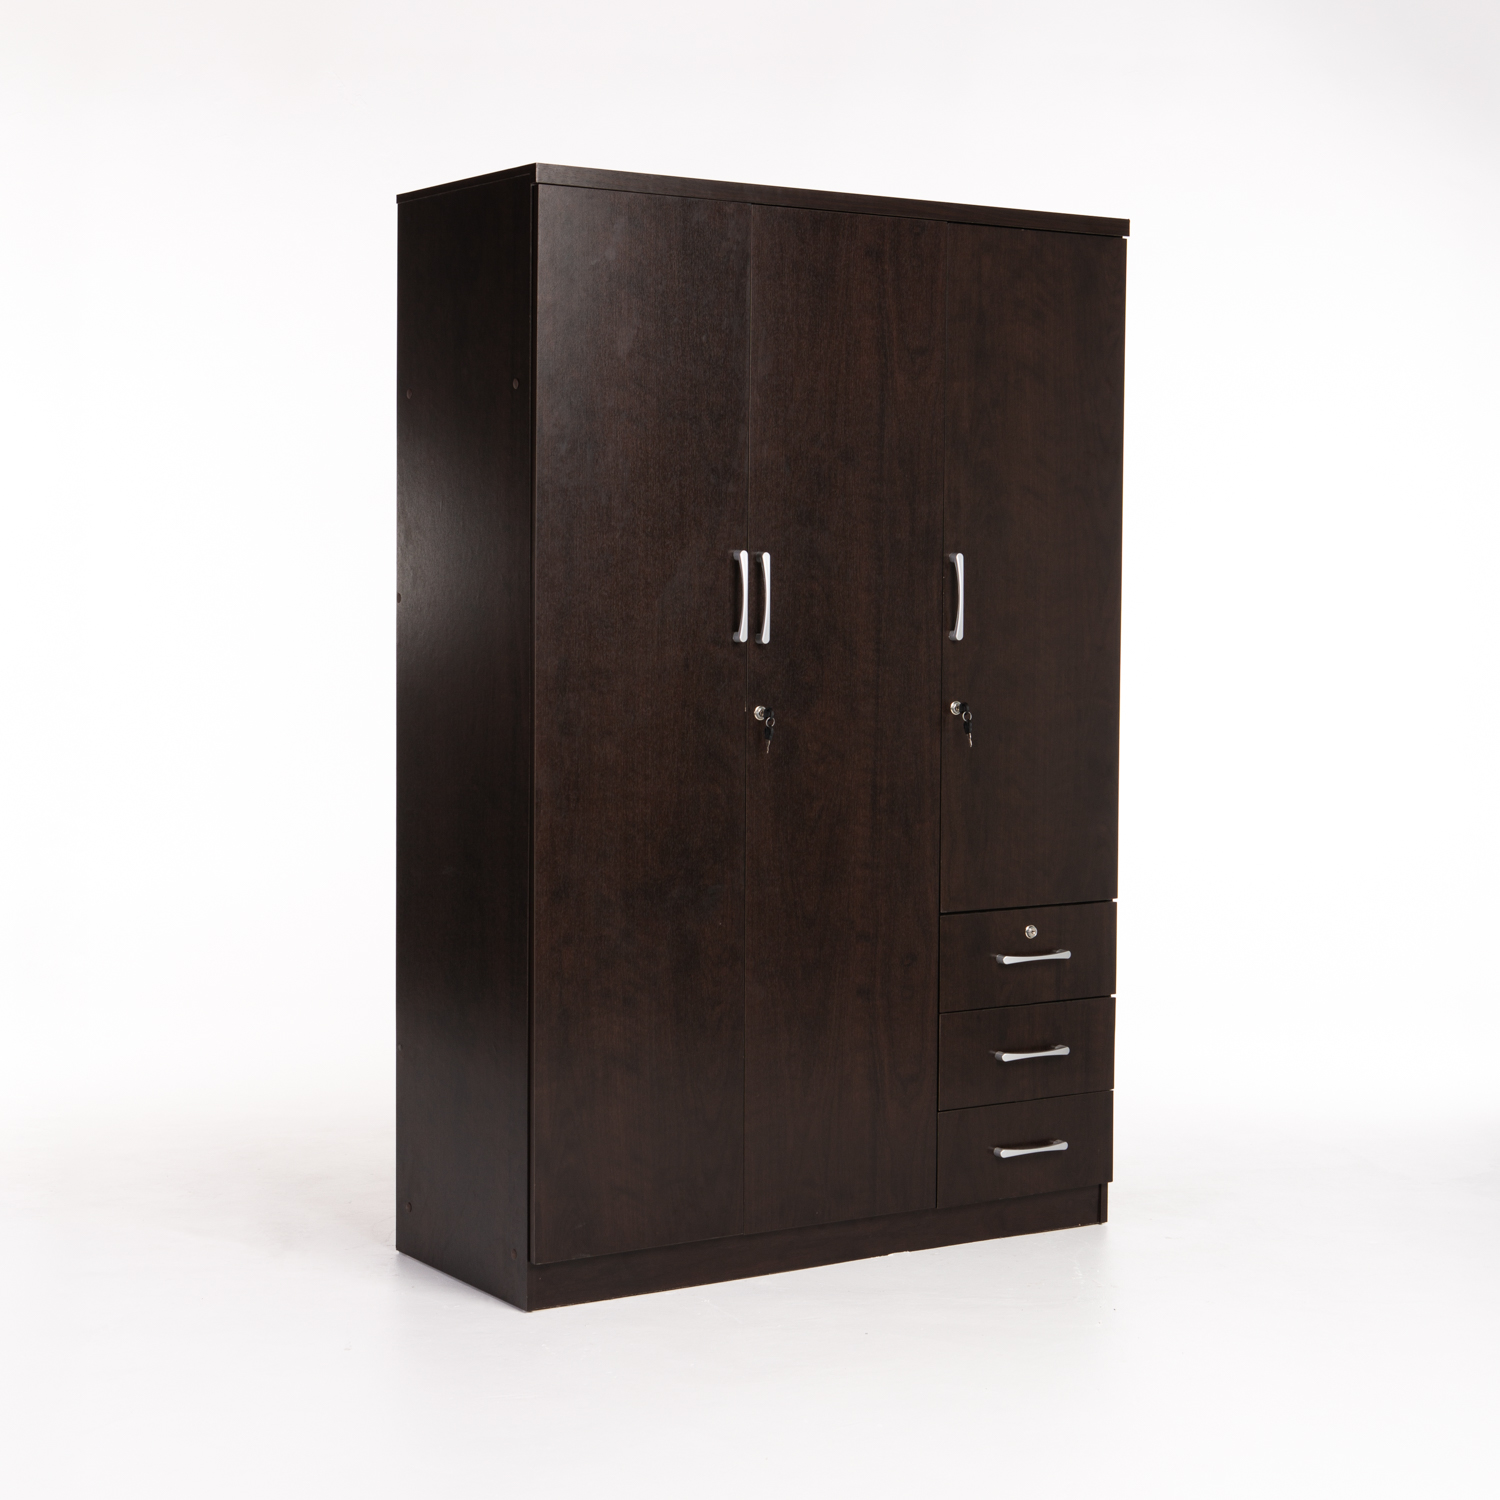 TITAN 3 DOOR 3 DRAWER DELUXE UNIT